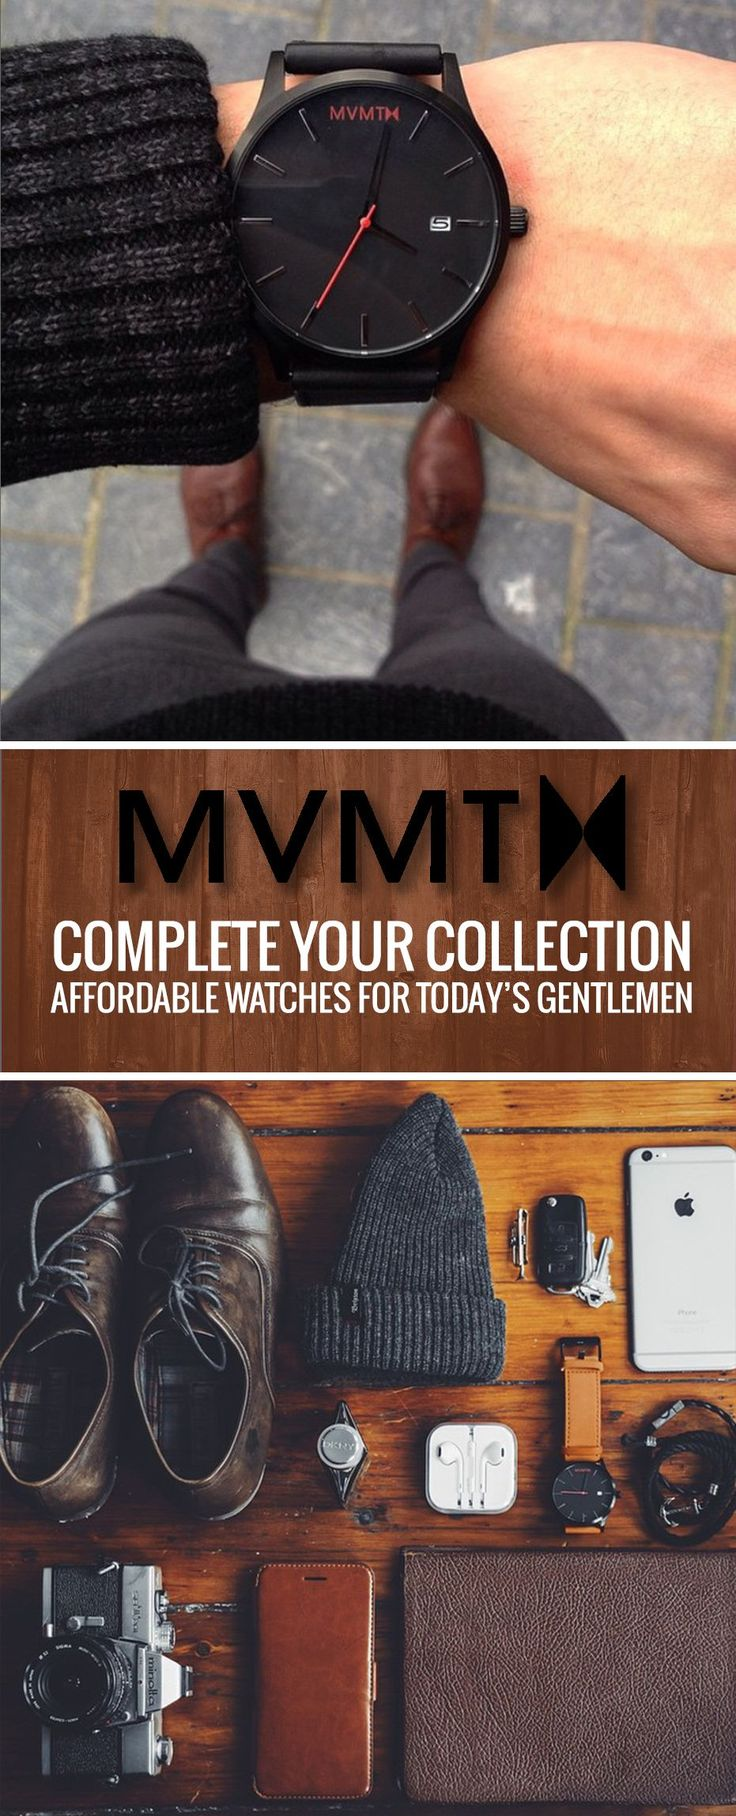 Looking for the perfect gift for the man in your life? With 13 men's styles to choose from all around $100, we're sure you'll find a watch that will fit his style!